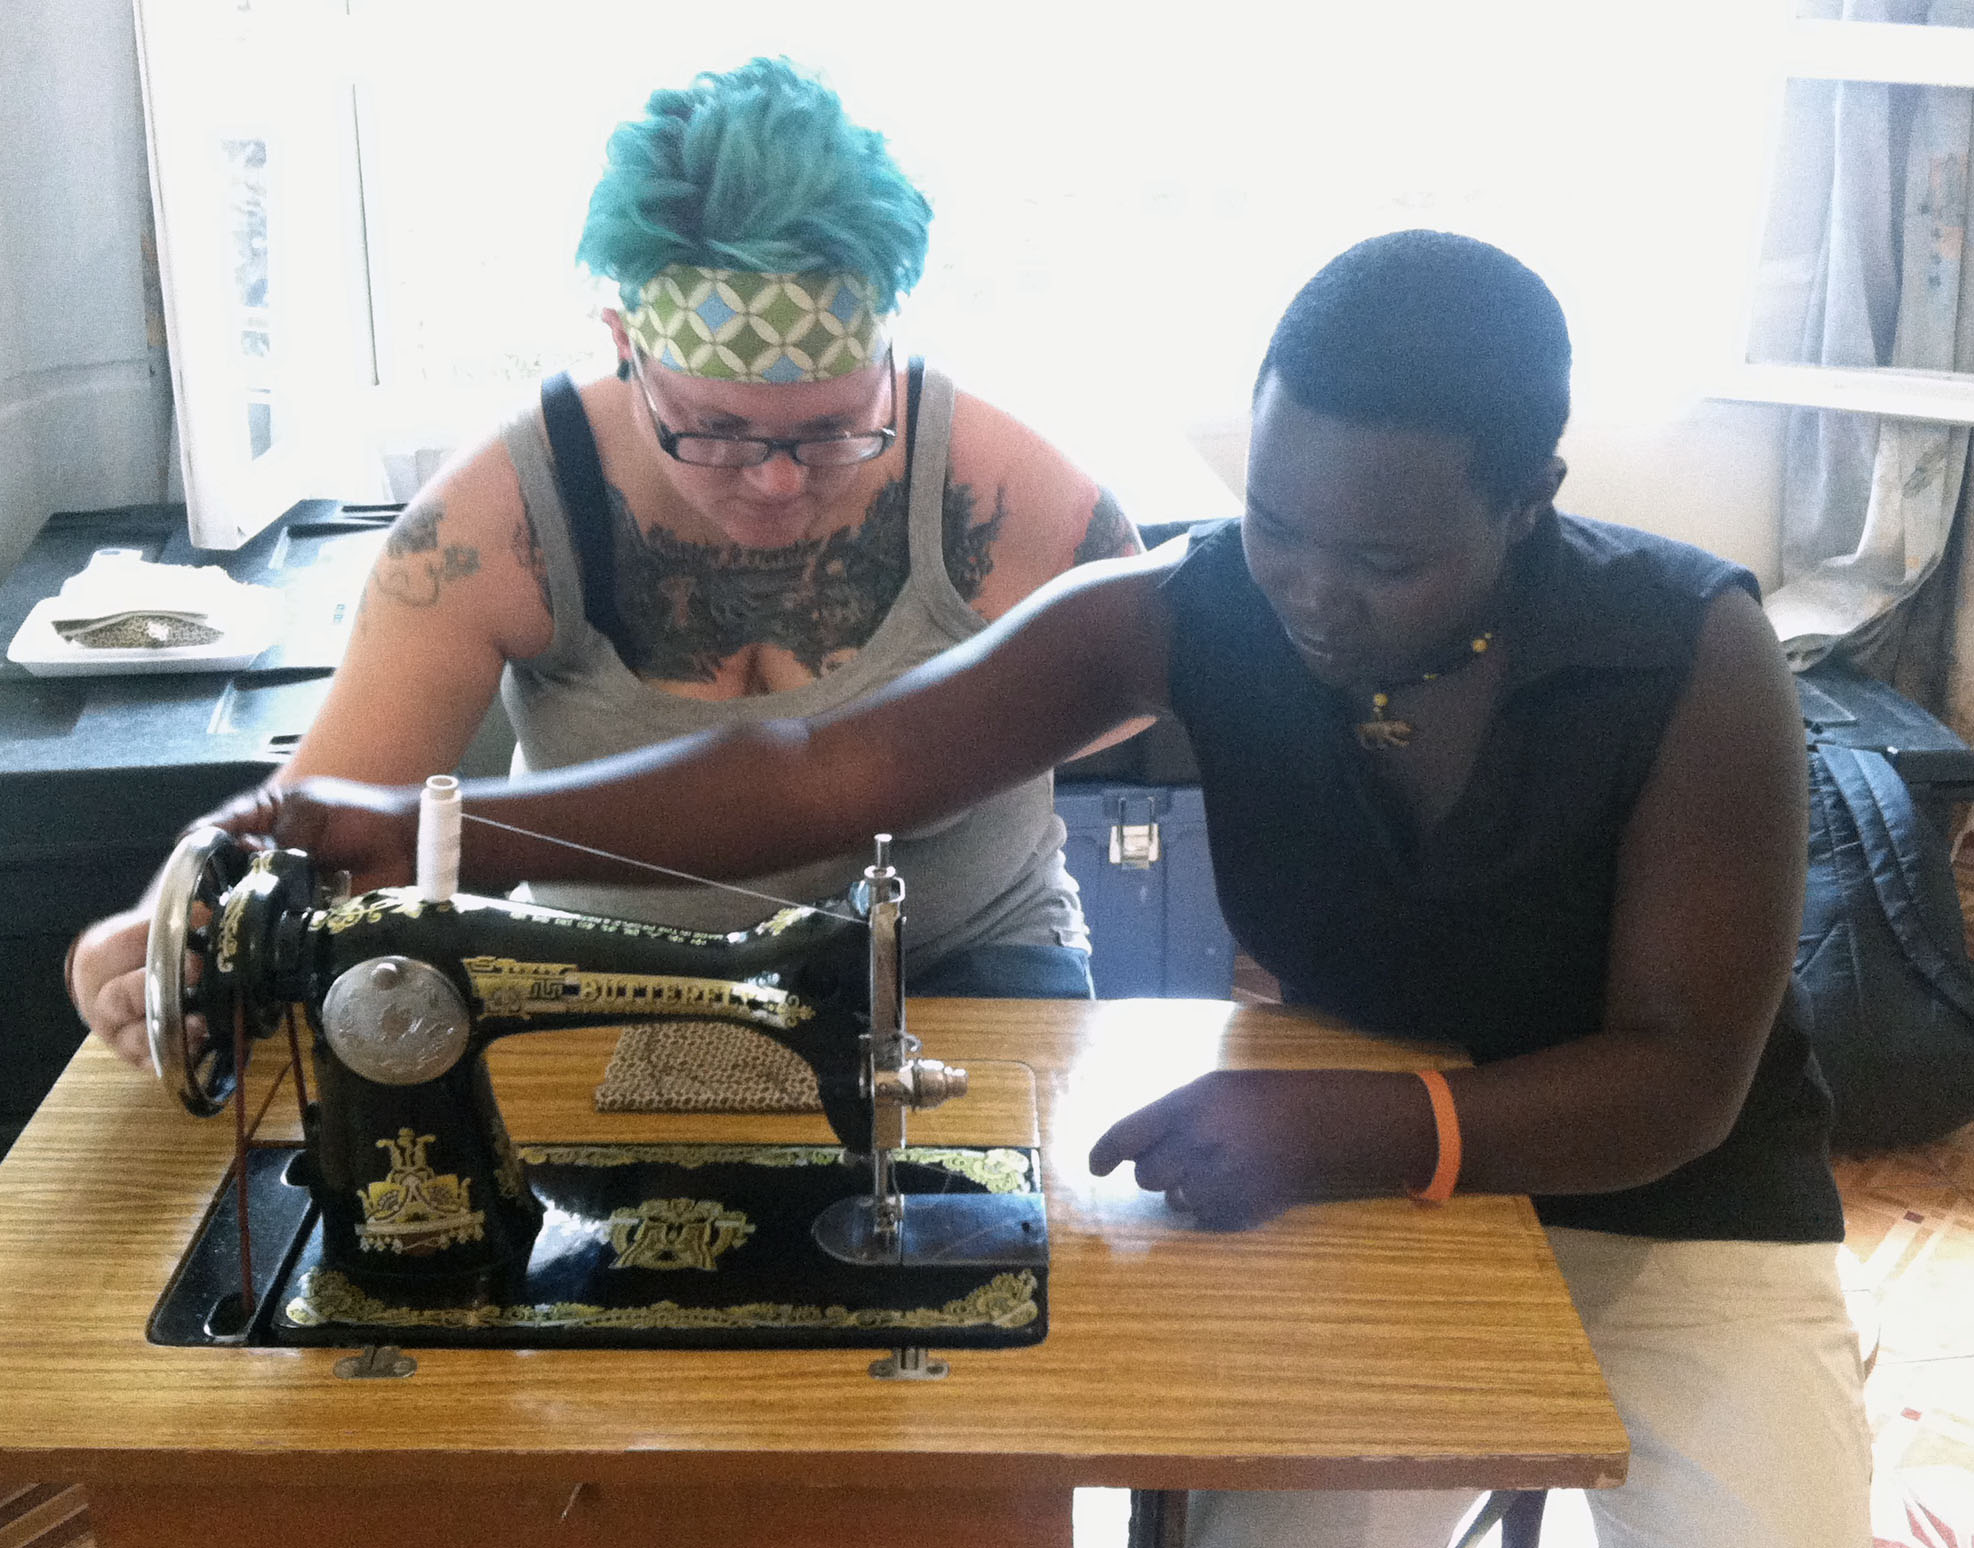 Heather getting schooled by Josiane in the ways of the treadle.